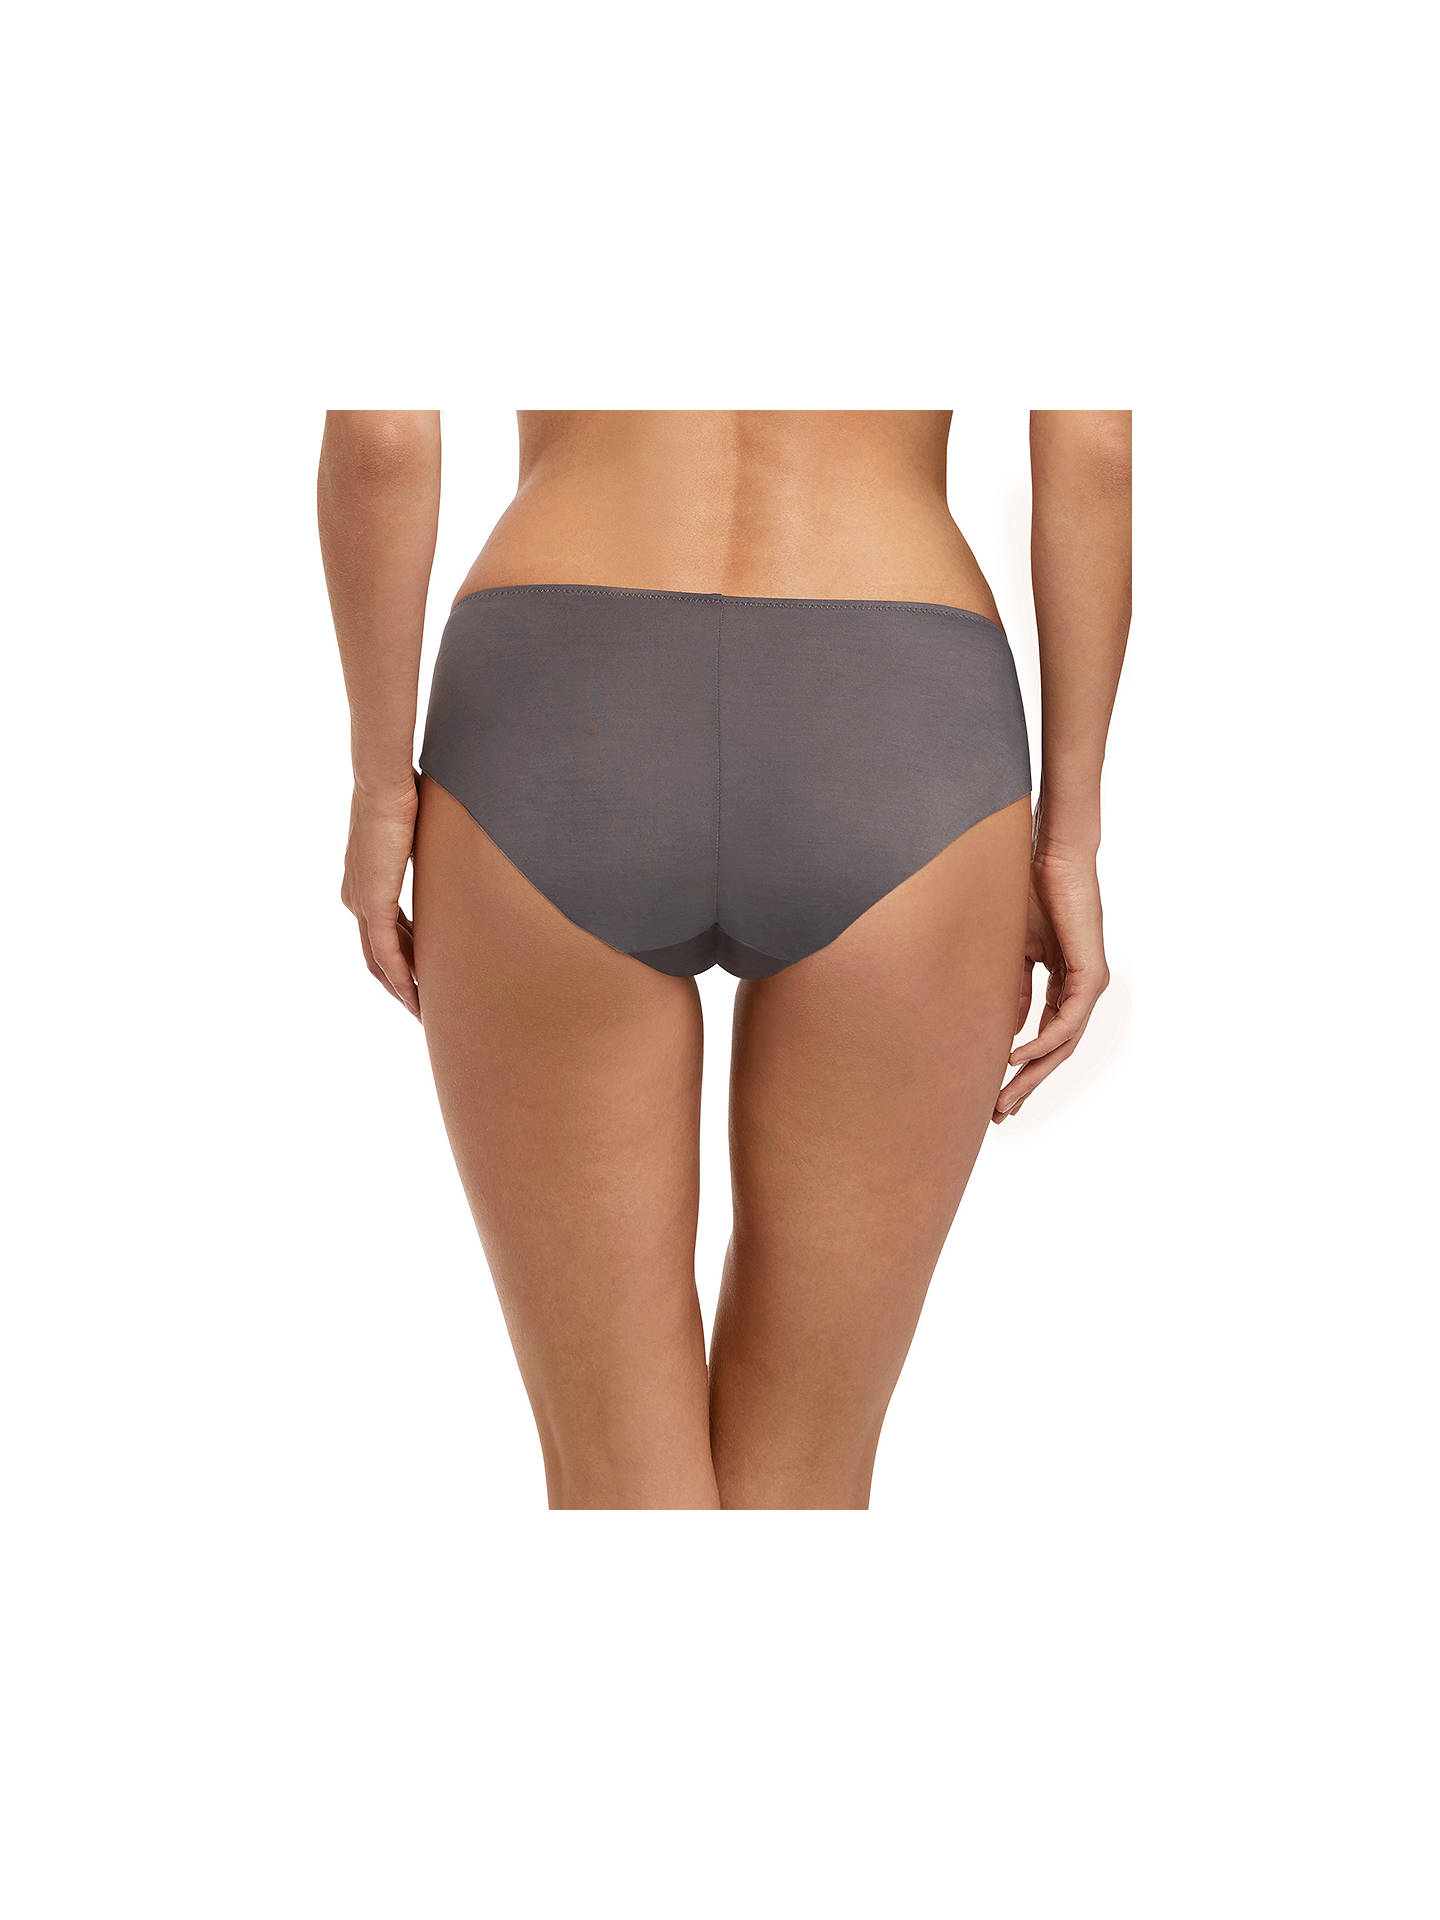 BuyFantasie Leona Briefs, Slate, S Online at johnlewis.com